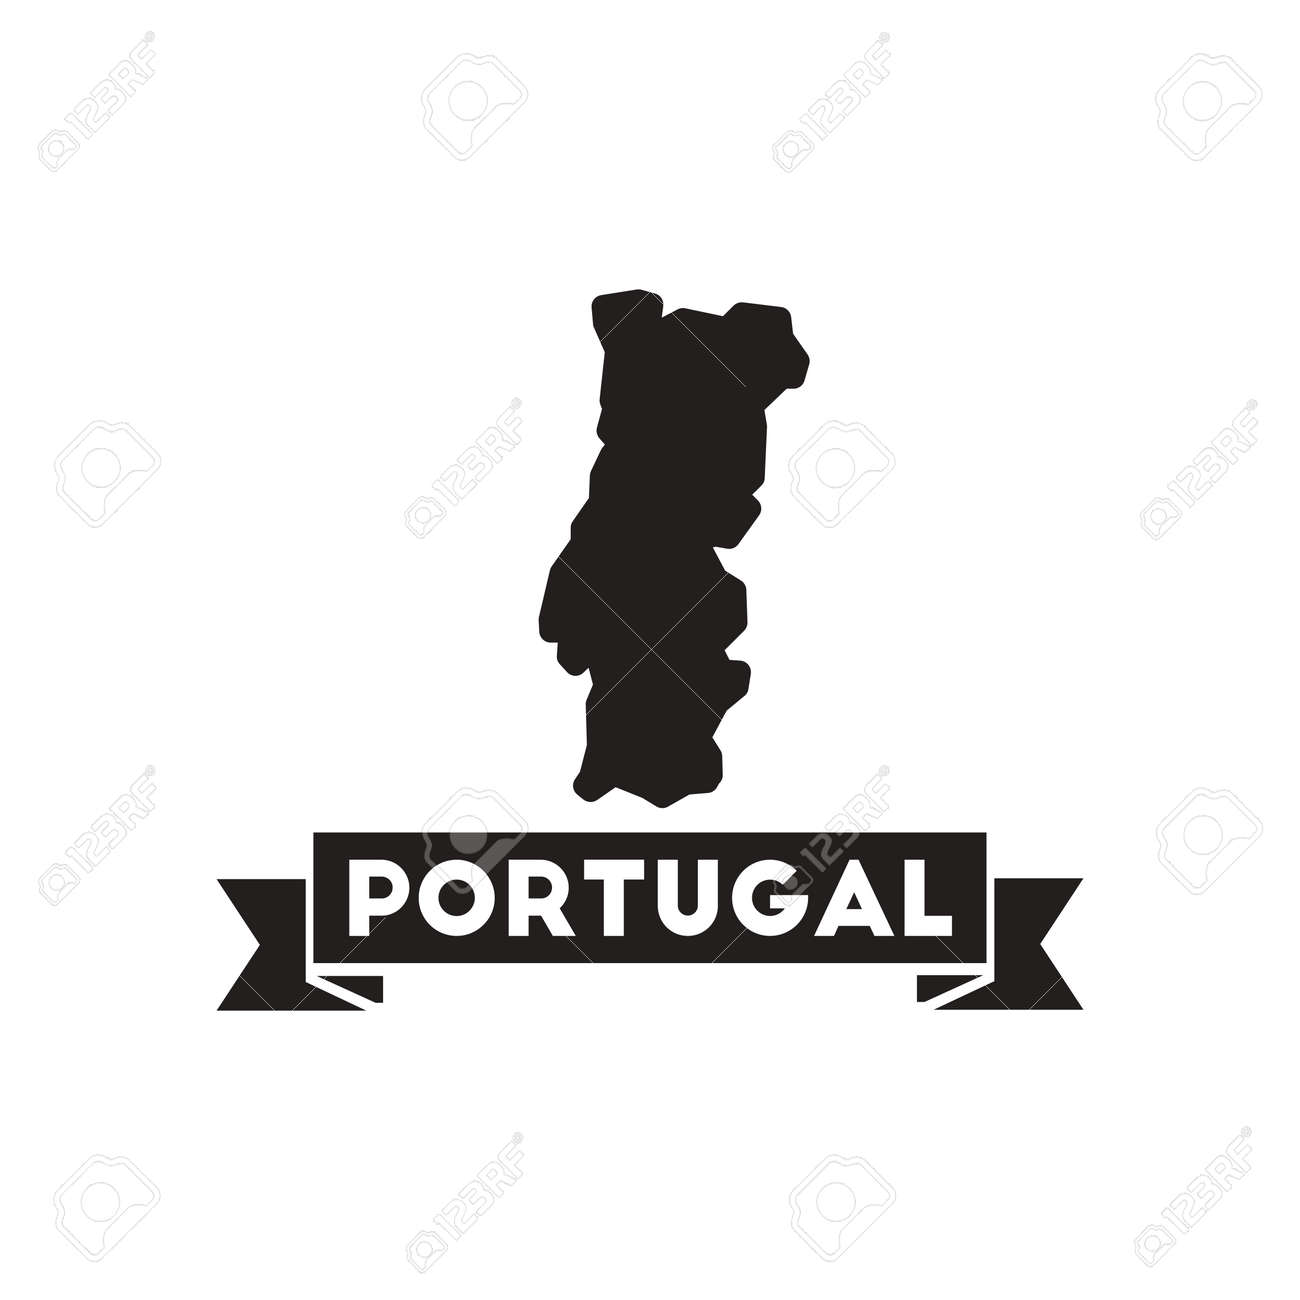 Flat Icon In Black And White Portugal Map Royalty Free Cliparts - Portugal map black and white